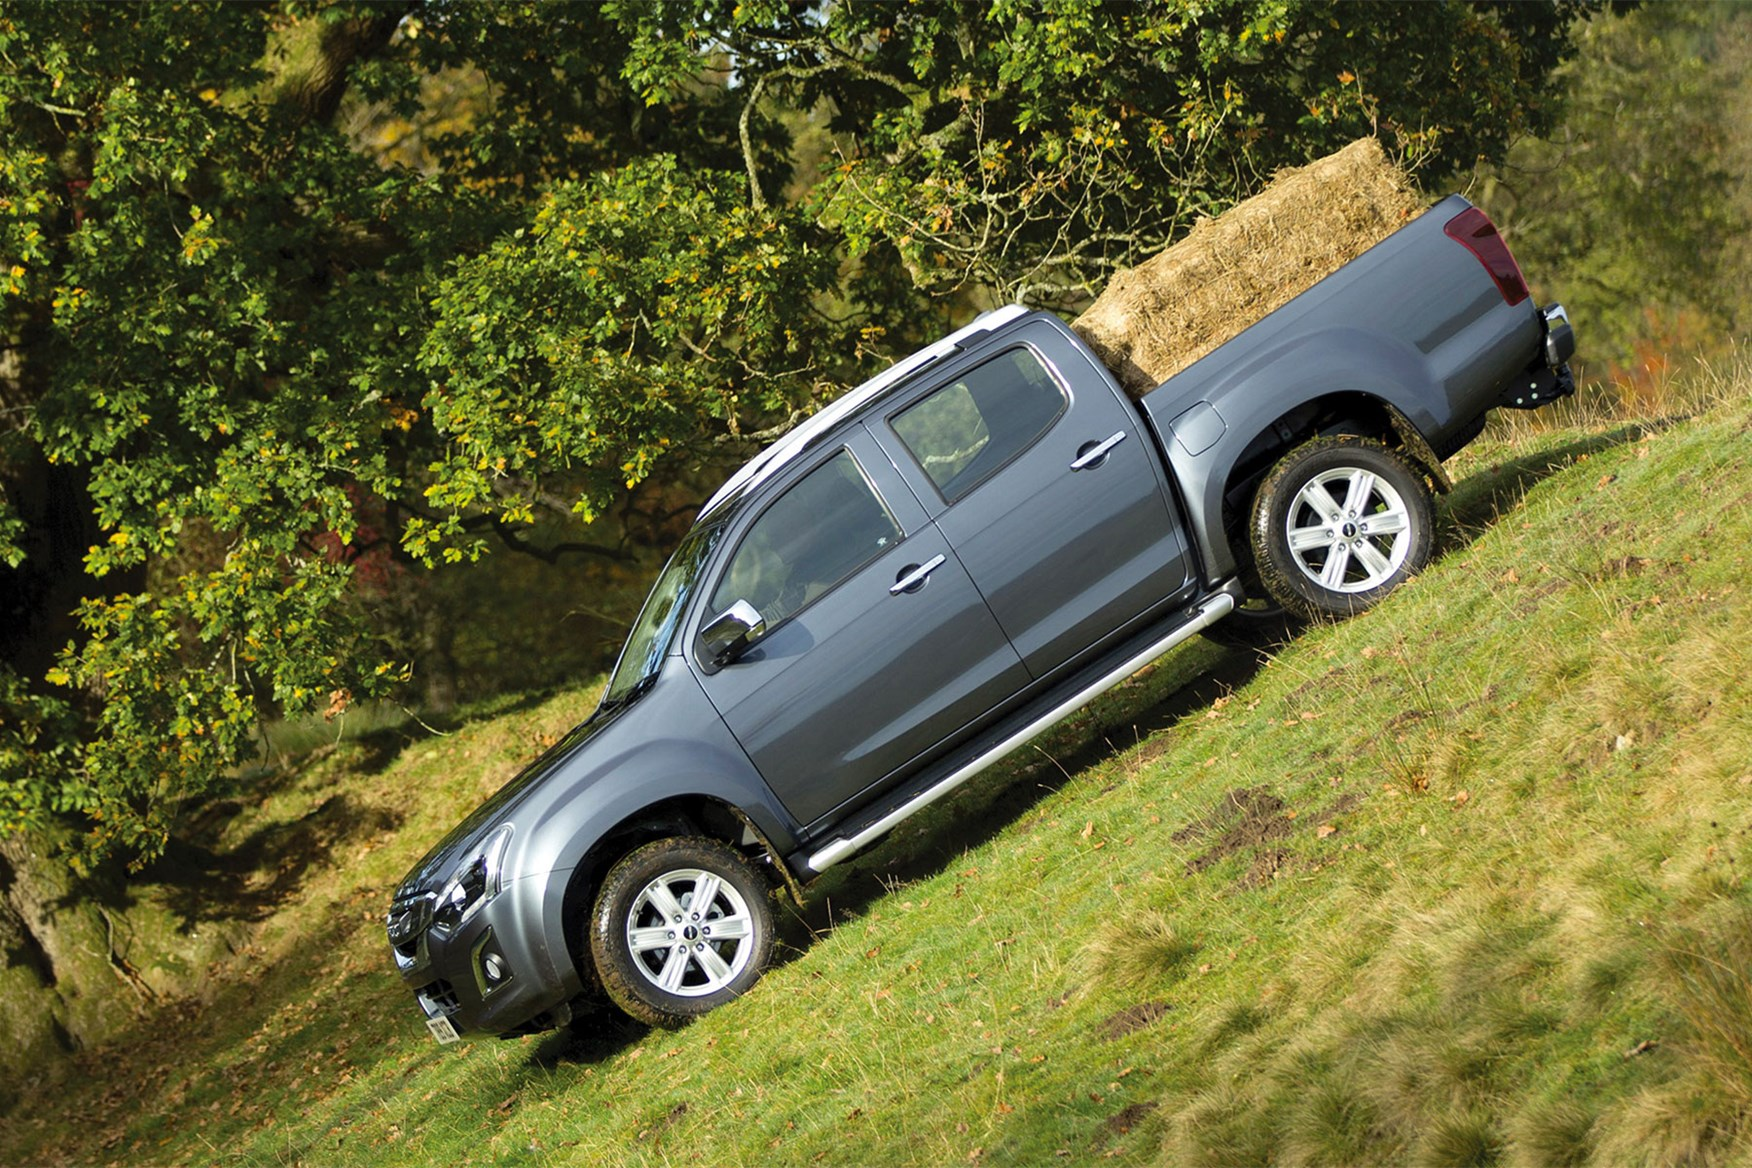 Isuzu D-Max pickup dimensions (2012-on), capacity, payload, volume